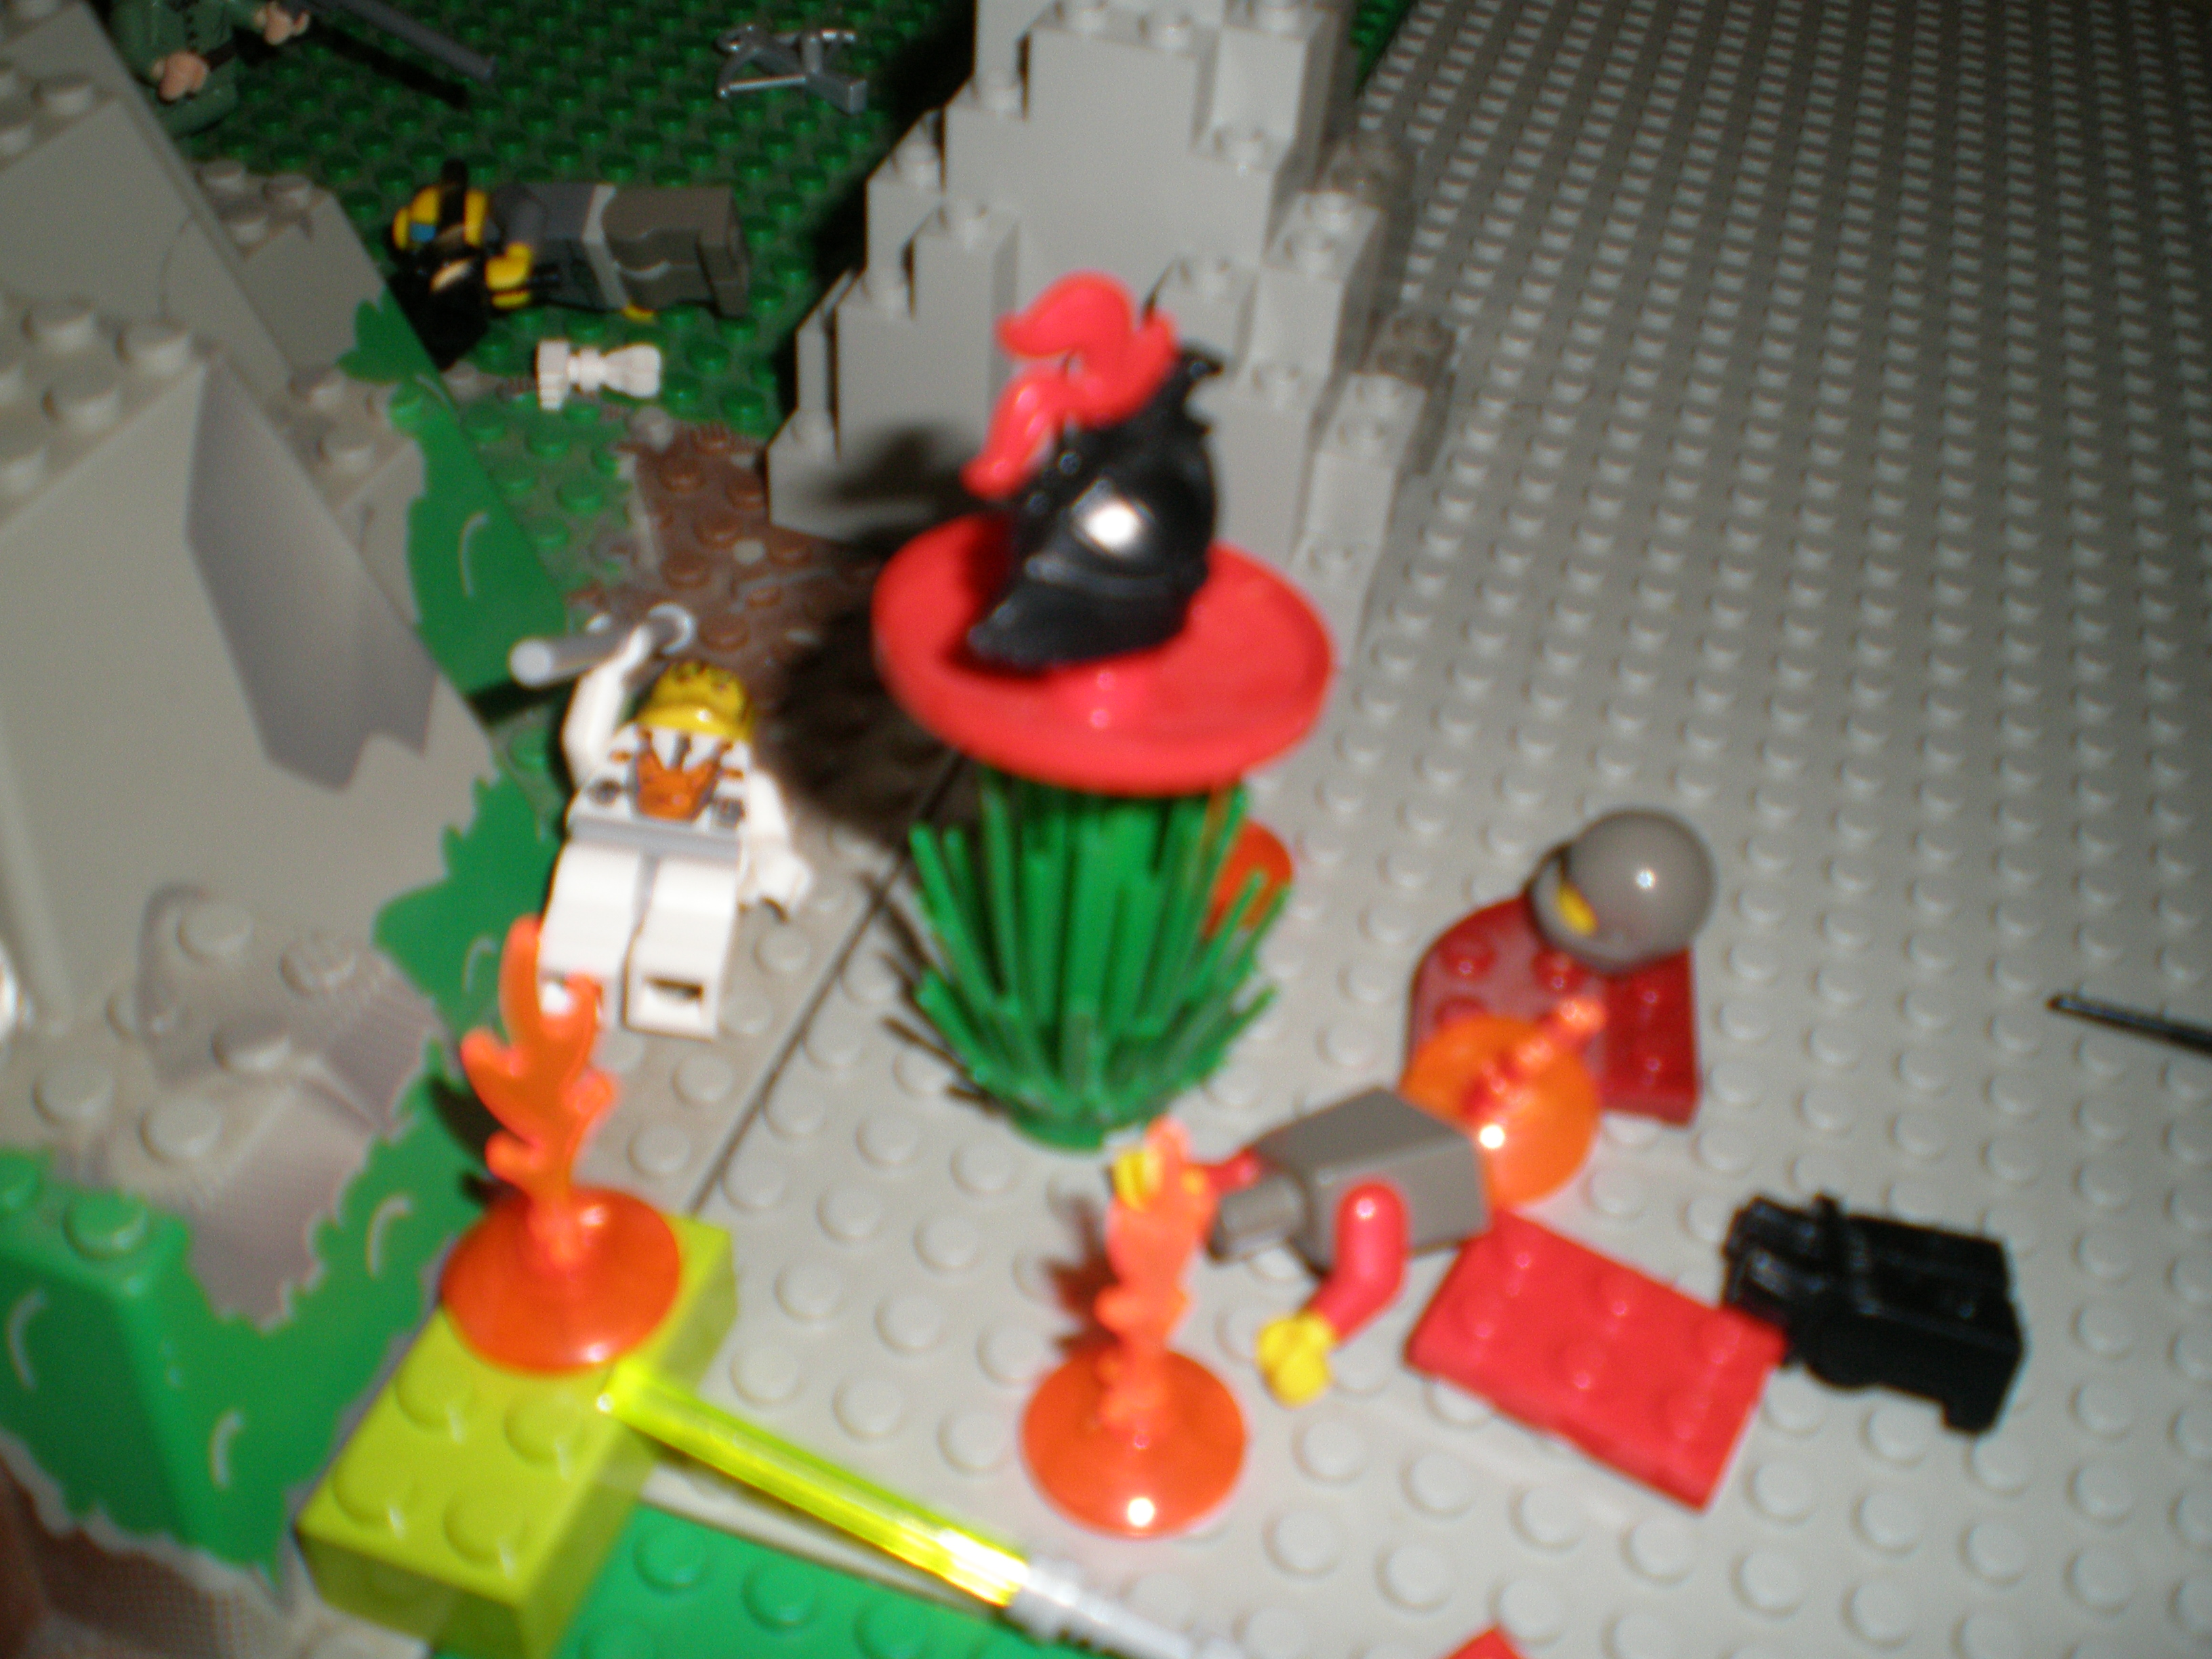 armagendon_lego_battle_015.jpg